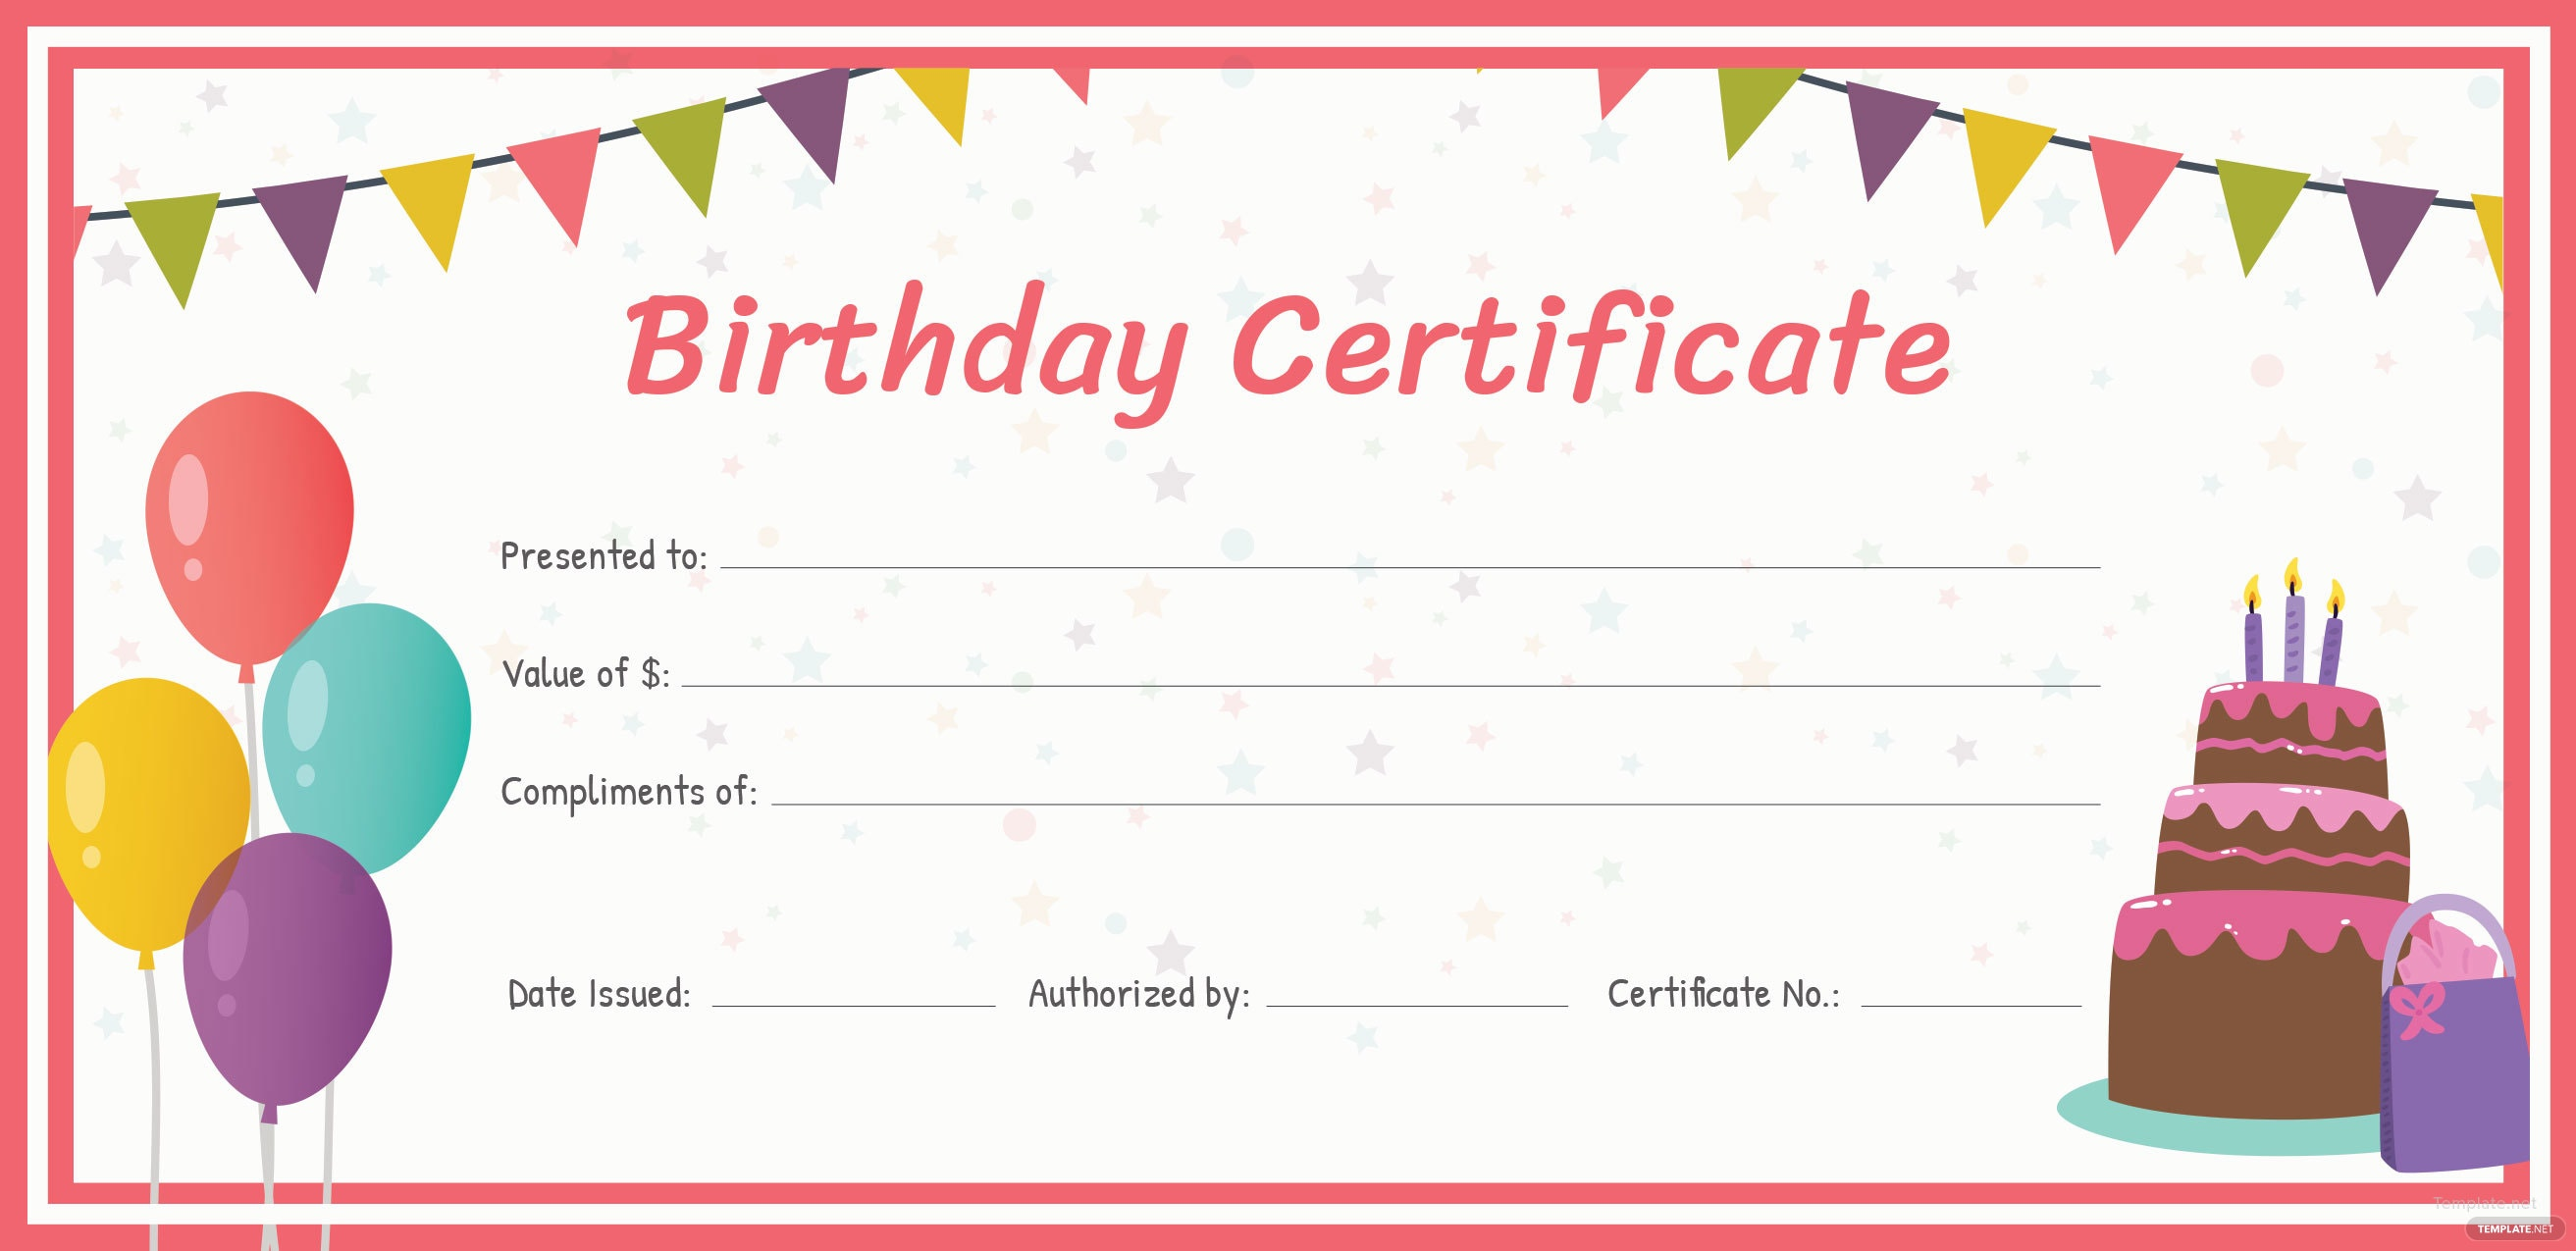 free birthday gift certificate template in adobe